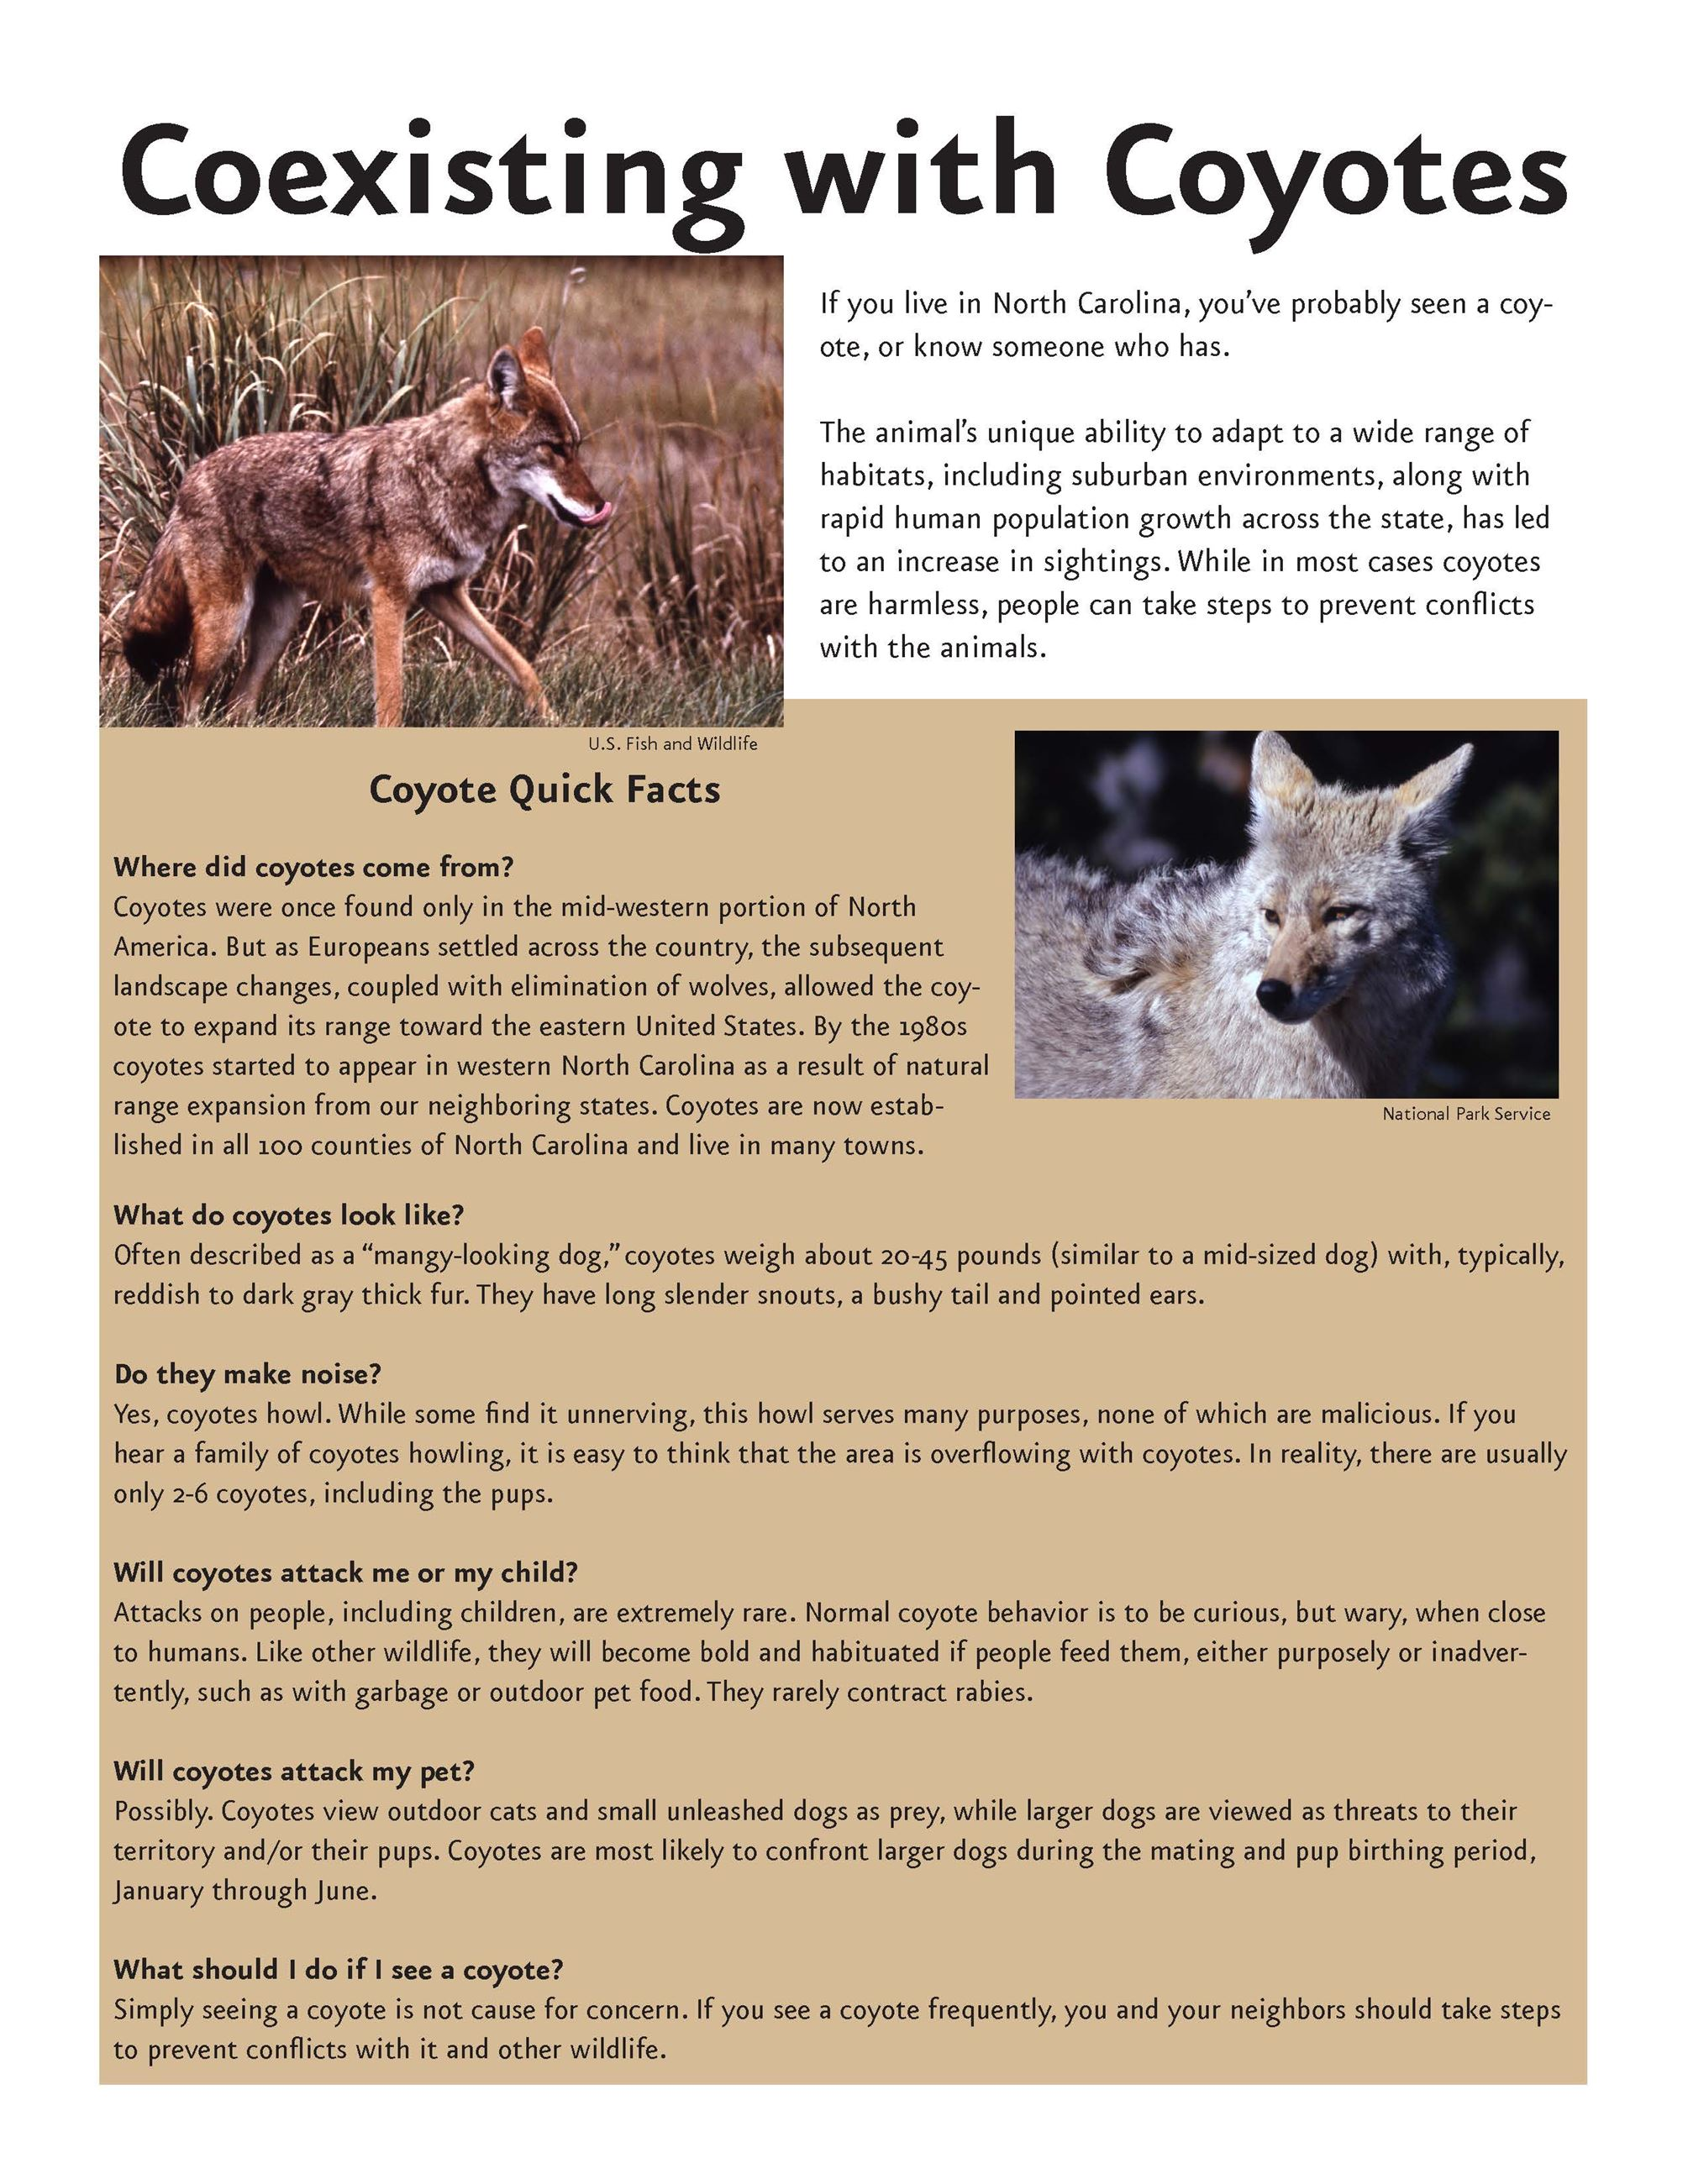 CoexistingWithCoyotes_Page_1